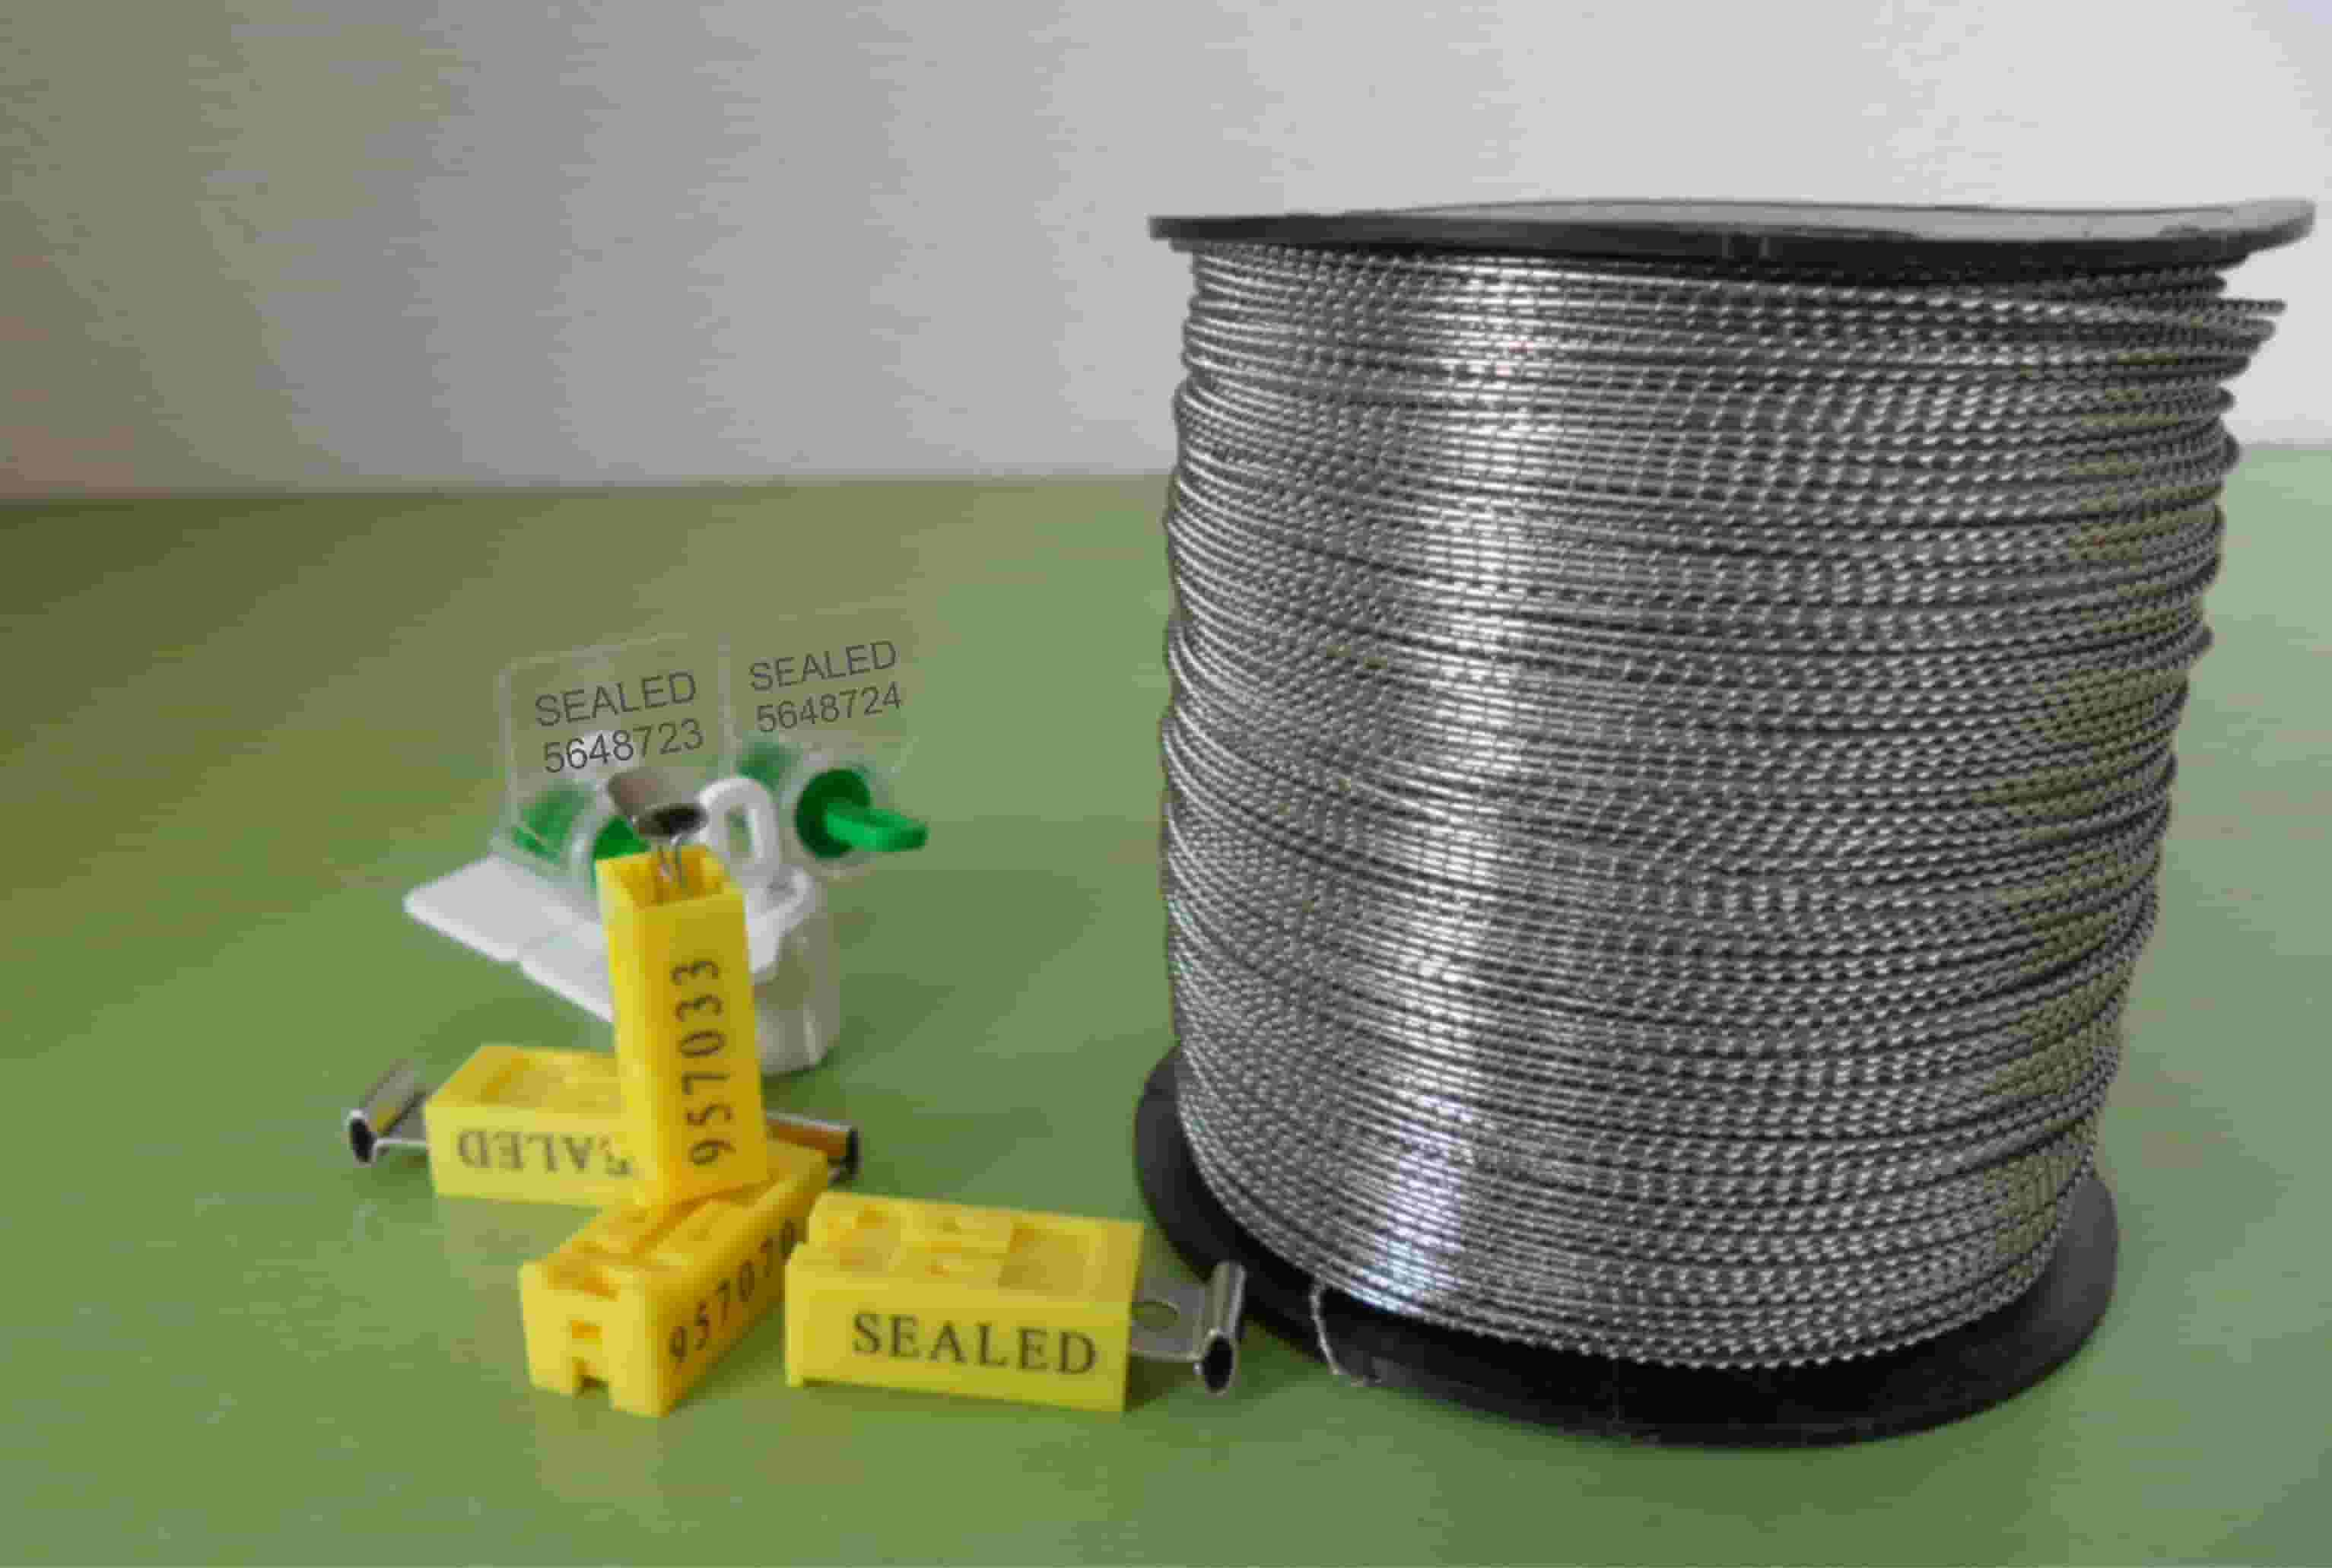 Stainless steel sealing wires are typically used with lead seals ...